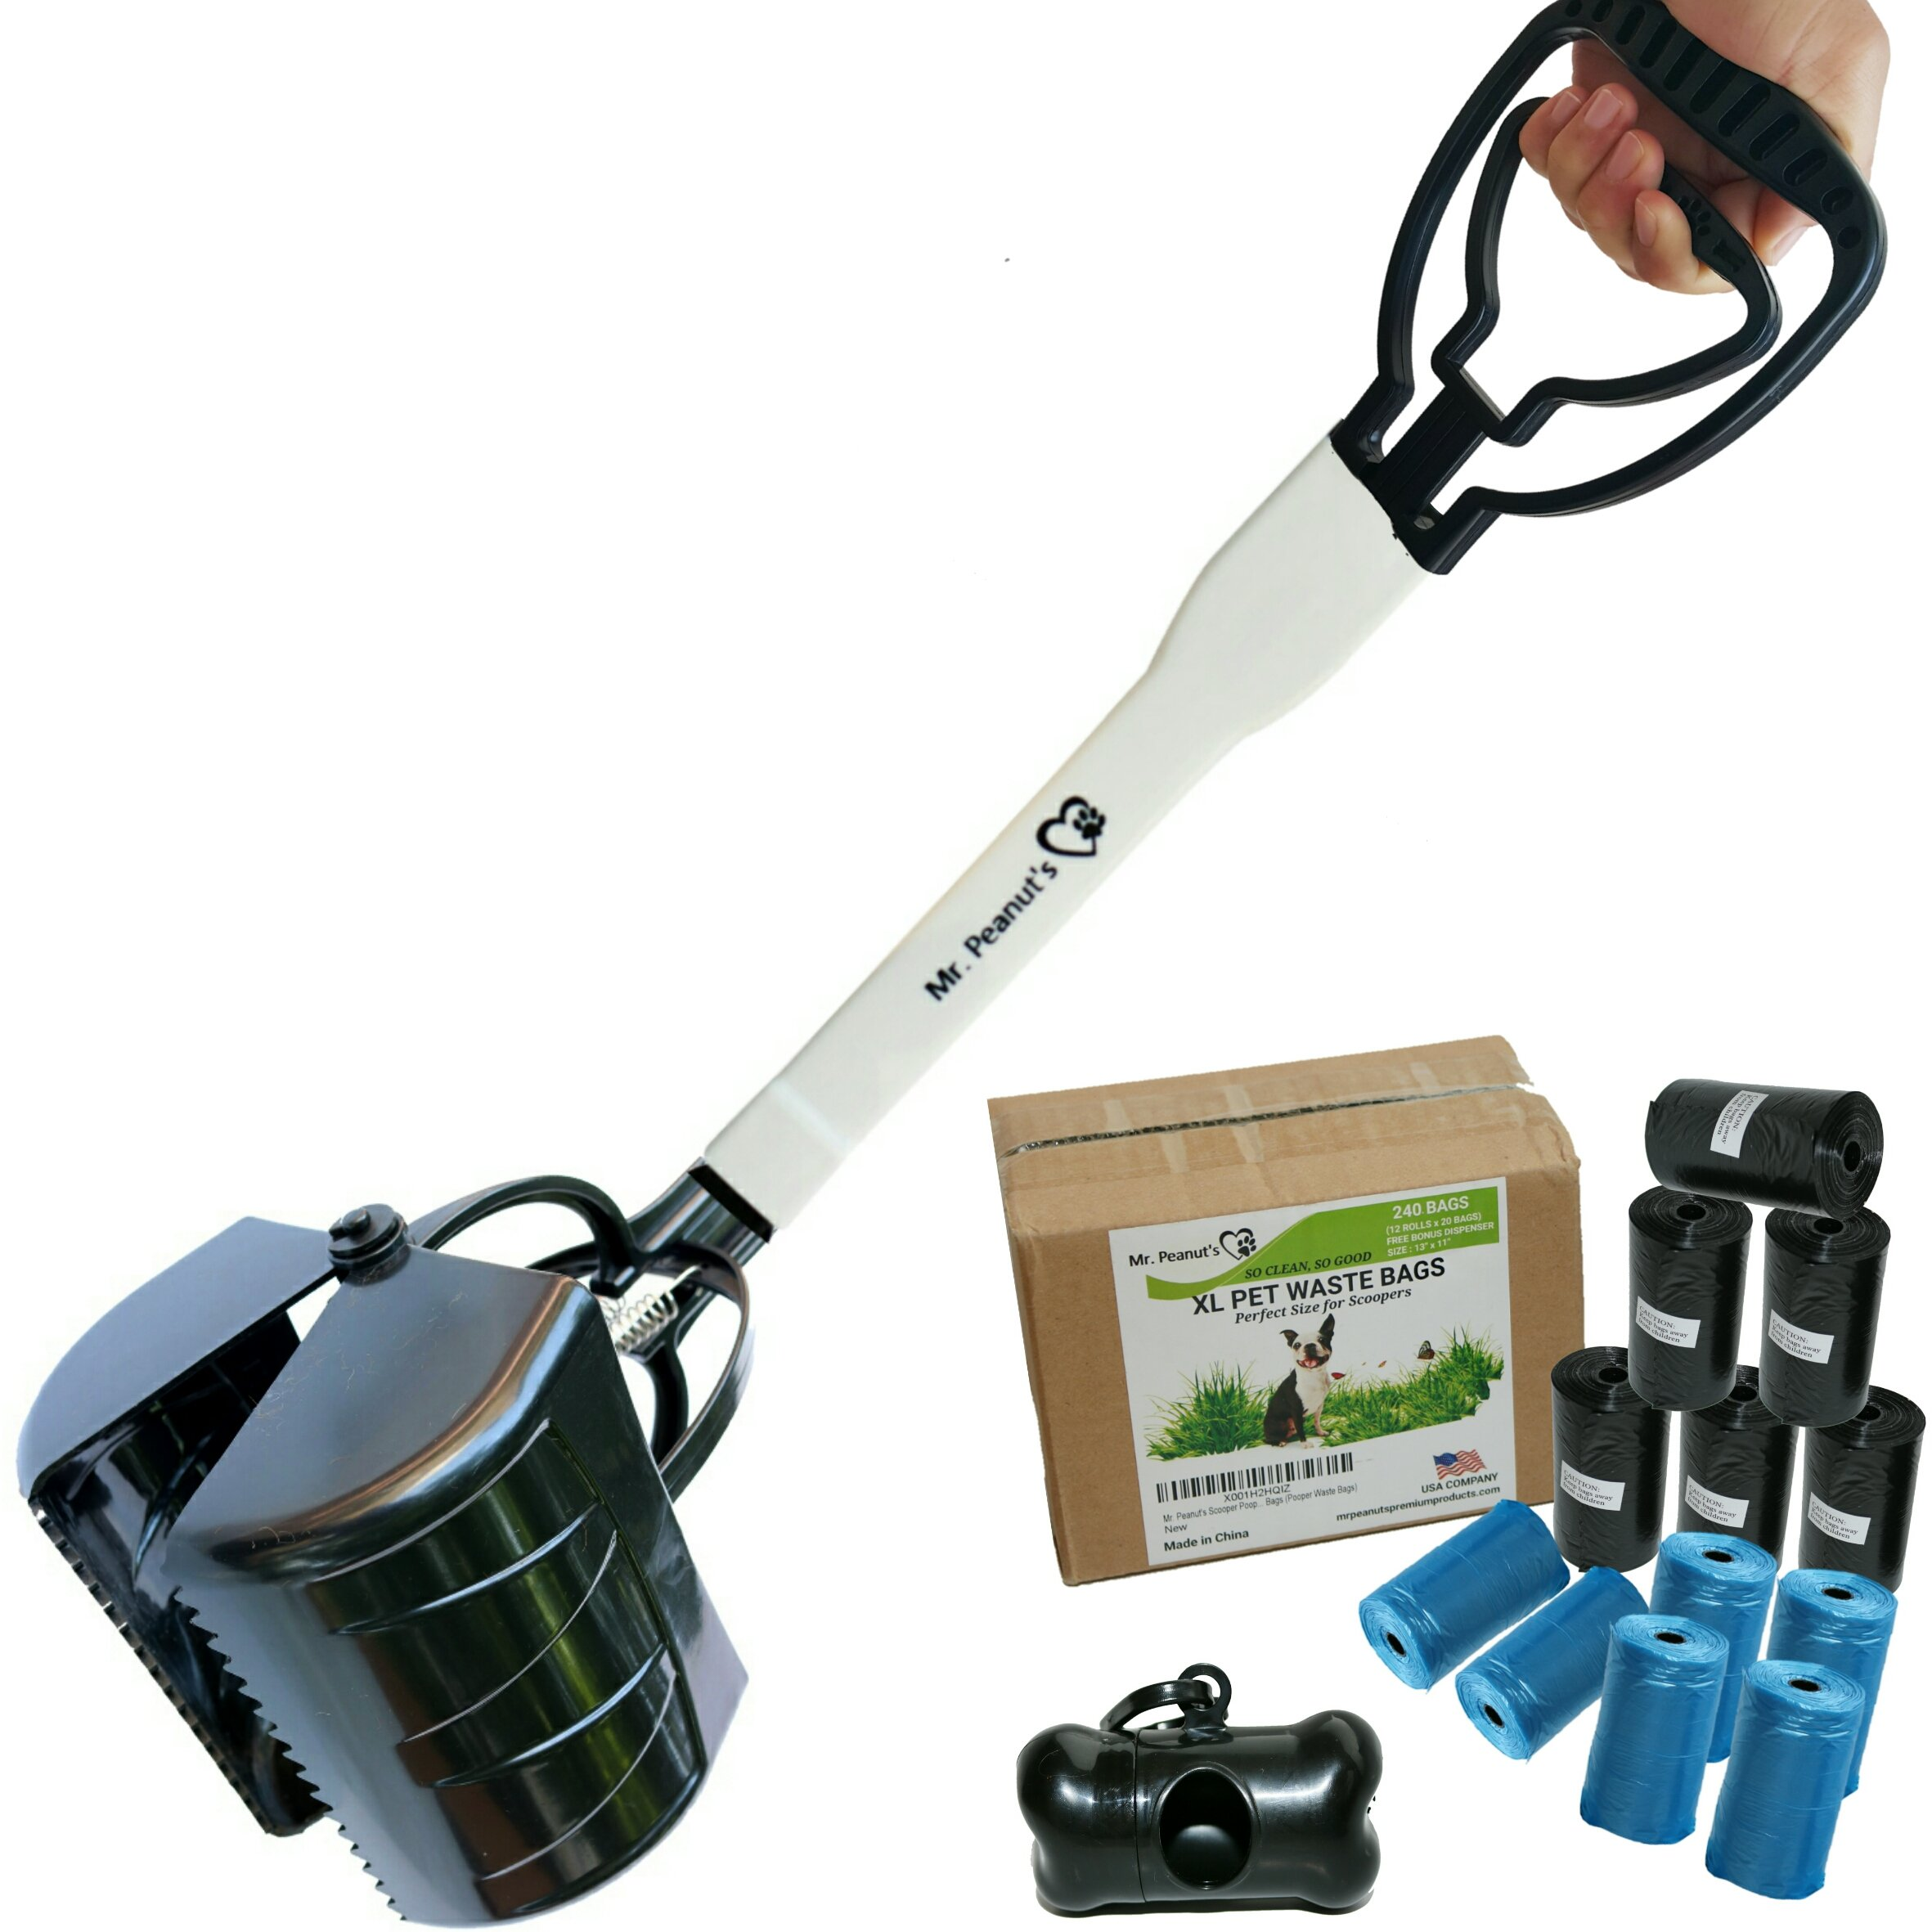 27'' Pooper Scooper Pack with 12 Rolls (240) of Fitted Bags and Dispenser, Heavy Duty ABS Plastic Bin & Durable Double Spring Clamp, Lightweight Design, No Assembly Required, Ready to Use